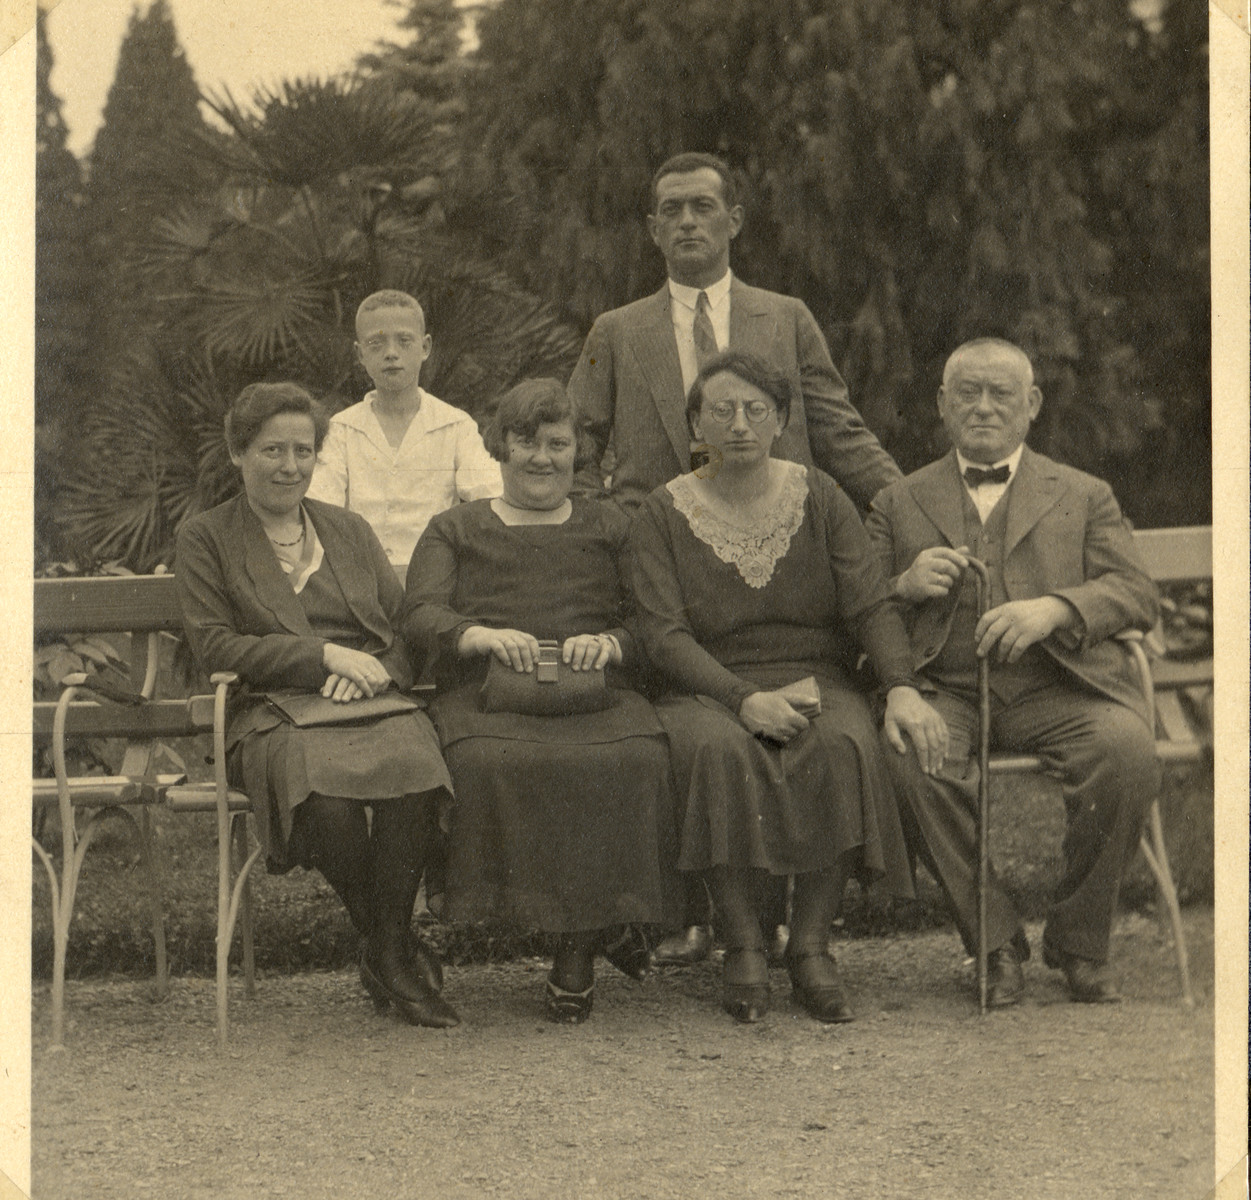 Prewar family portrait of the Wertheim family.  Margarete Wertheim is seated second from the right.  Her husband Erich Wertheim is standing behind her.  Eva Elli Flechtheim (a family friend) is seated second from the left.